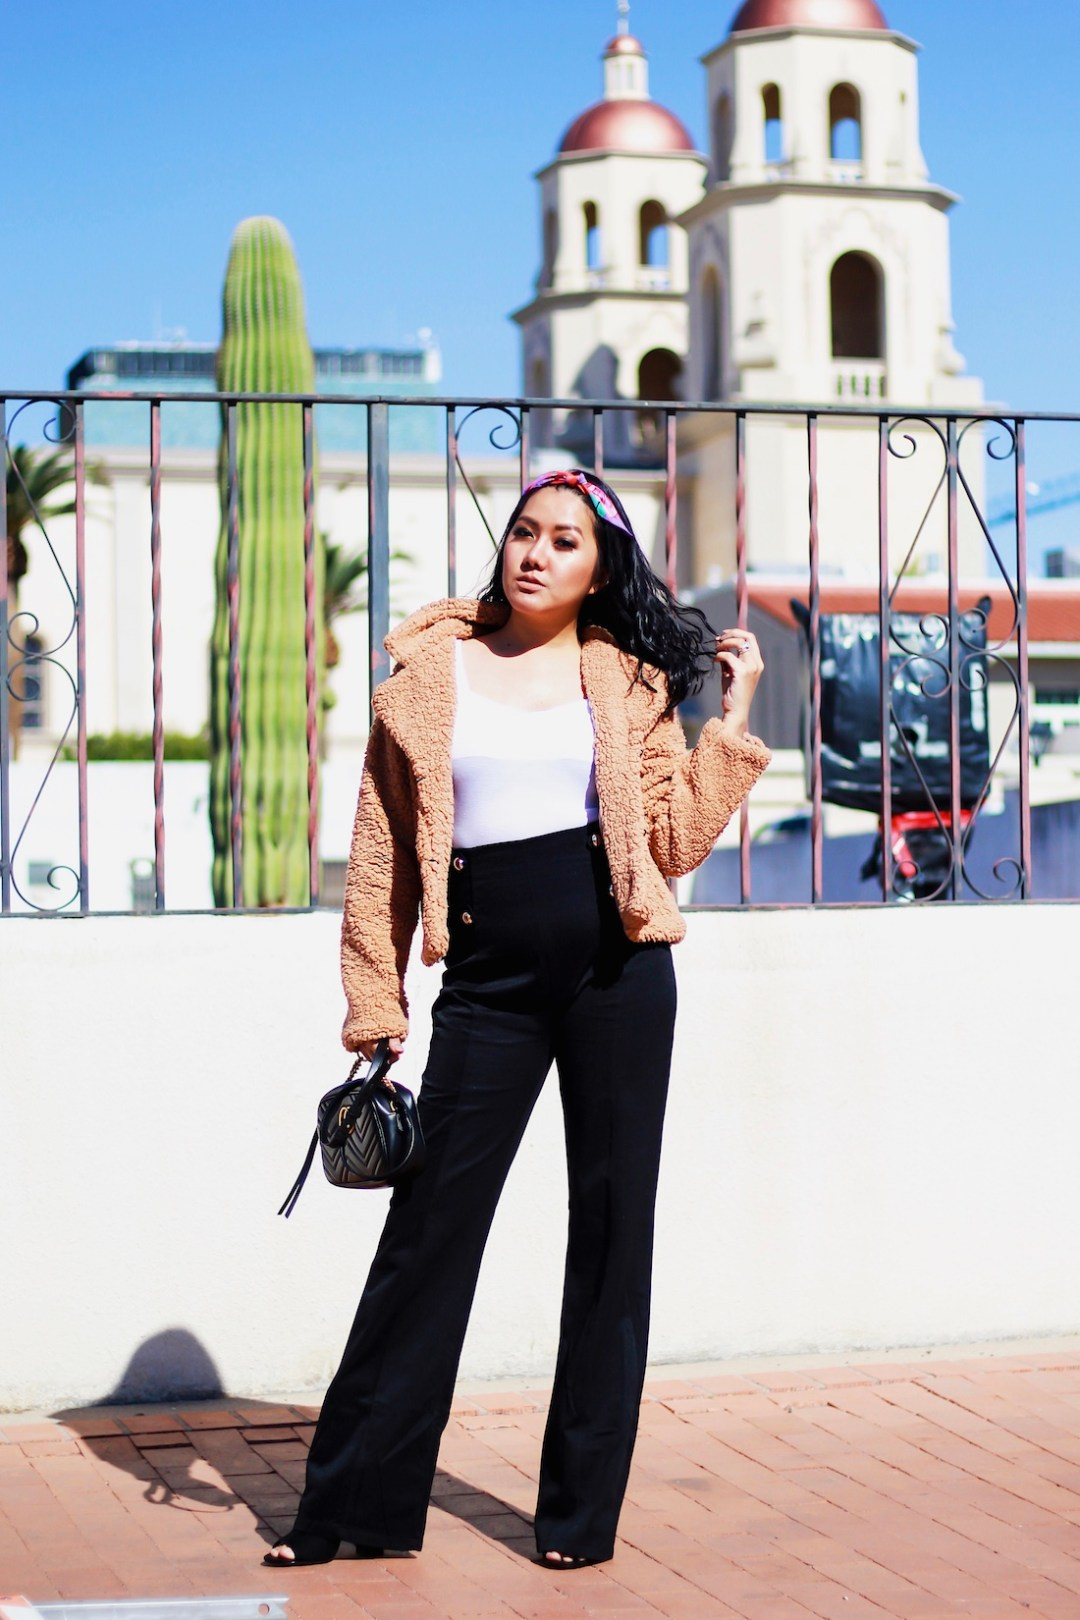 Transform to A Spring Look One Easy Tip Three Ways